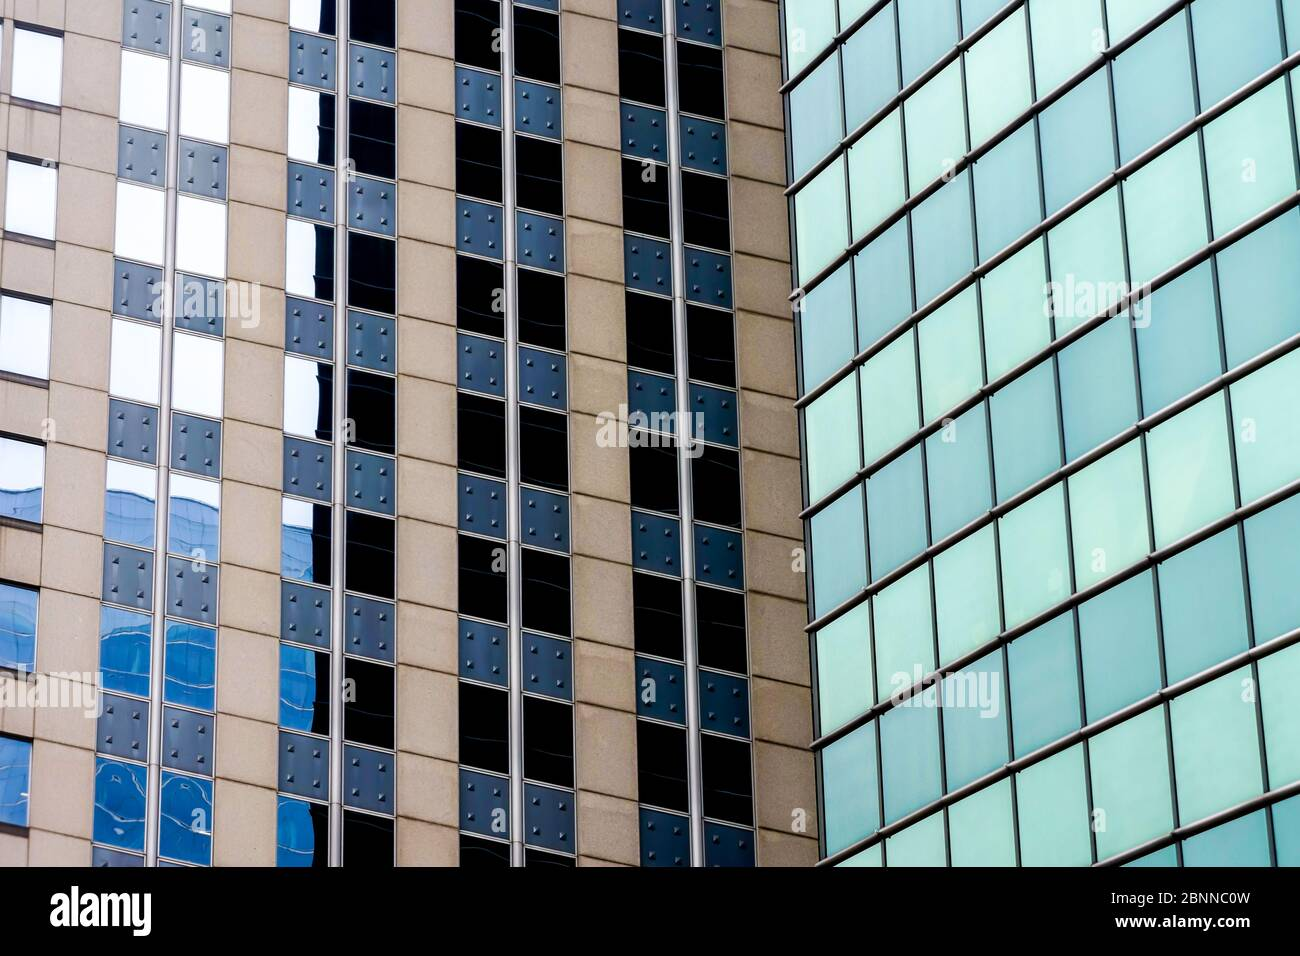 Upward view of chicago skyscrapers and tall office buildings.  Showcasing various architectural styles. Illinois usa. Stock Photo